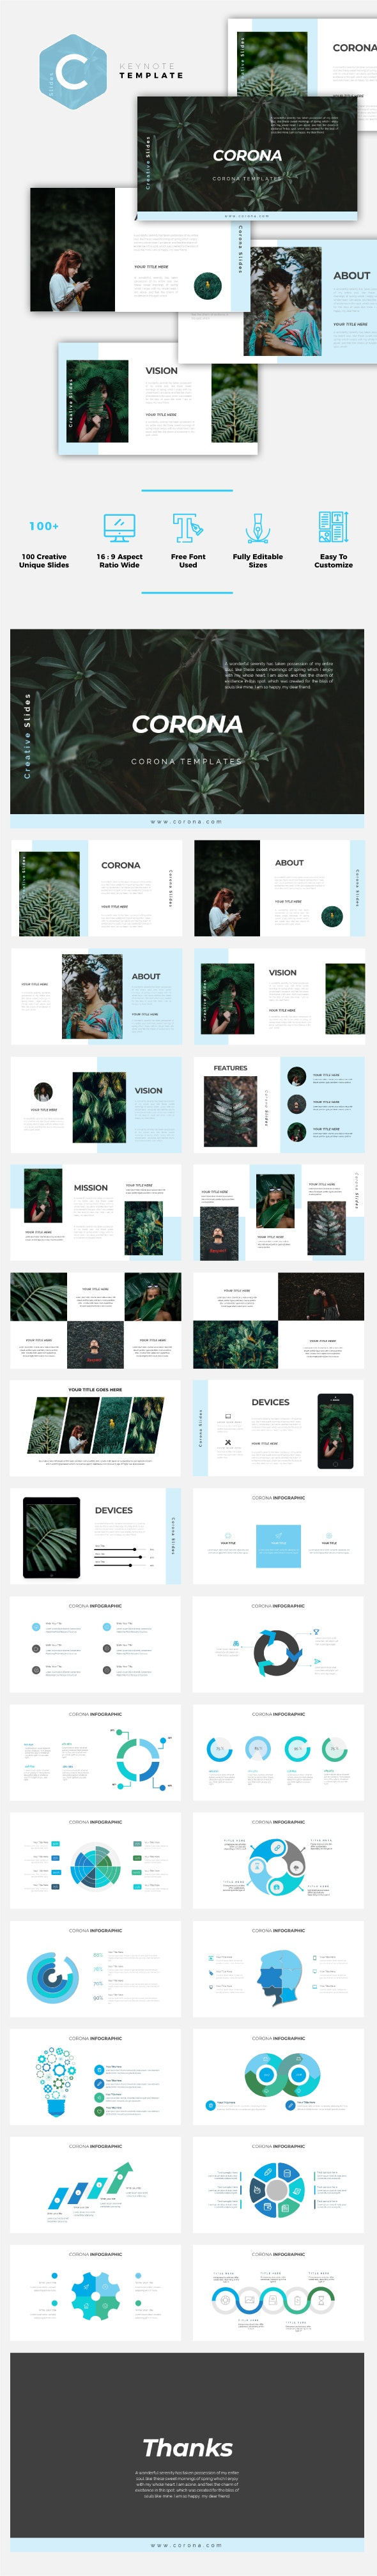 Corona - Creative Keynote Template - Creative Keynote Templates